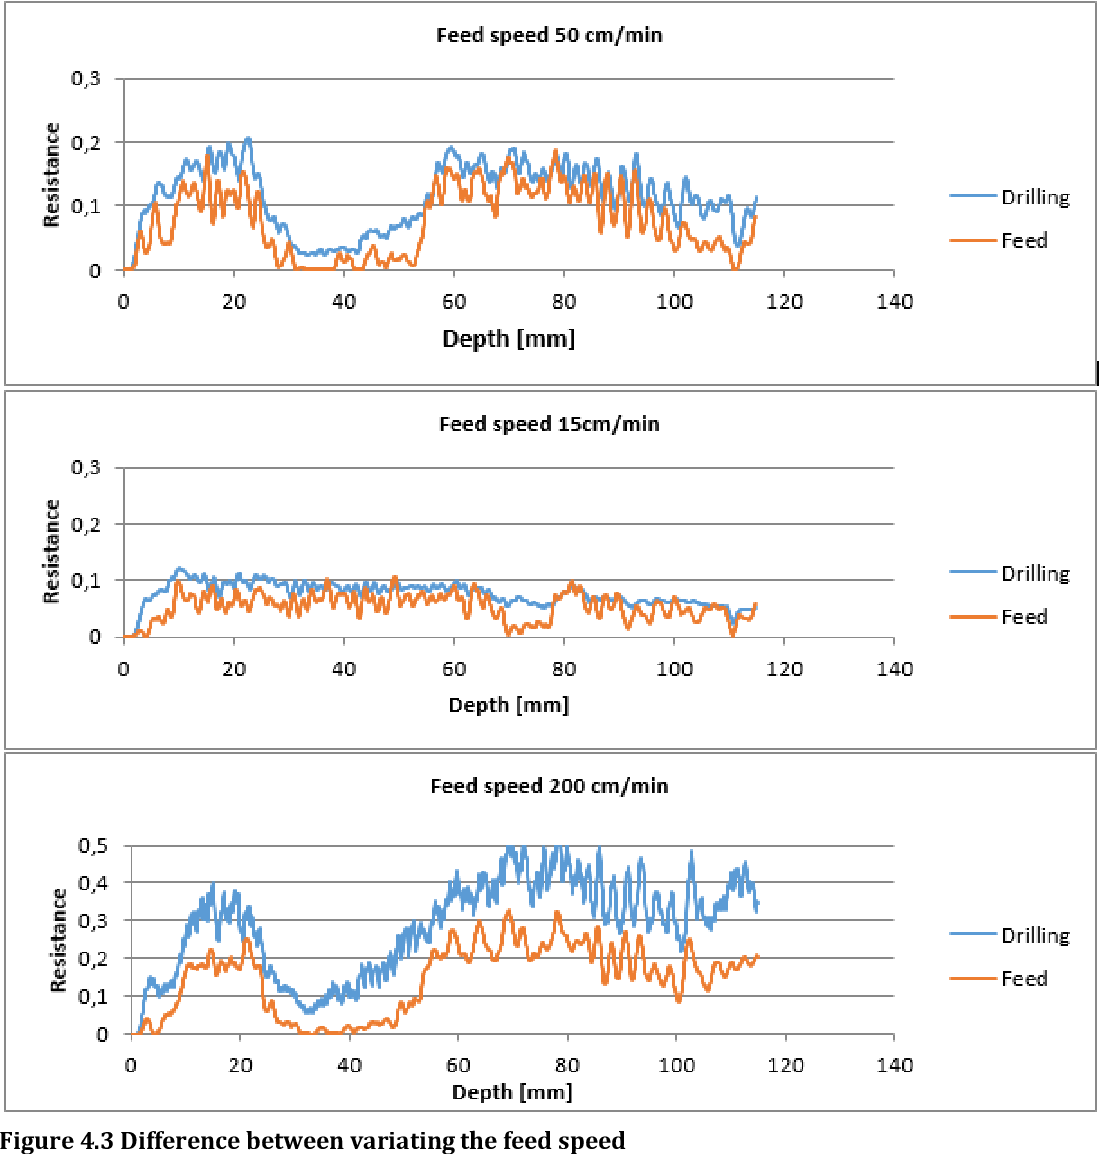 Figure 4.3 Difference between variating the feed speed